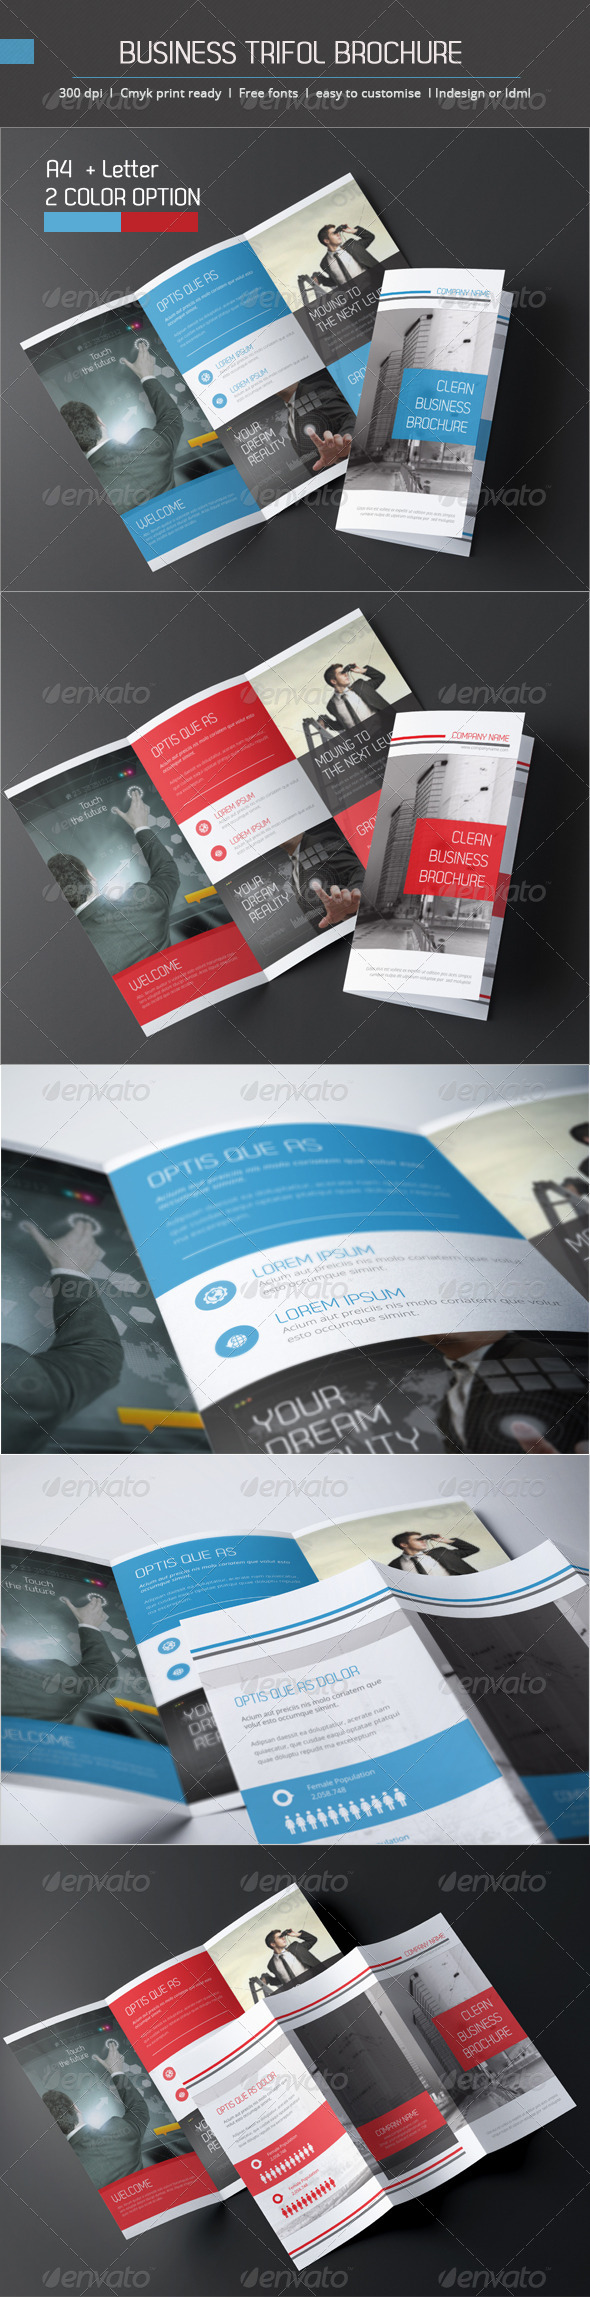 GraphicRiver Business Trifold Brochure 6057806